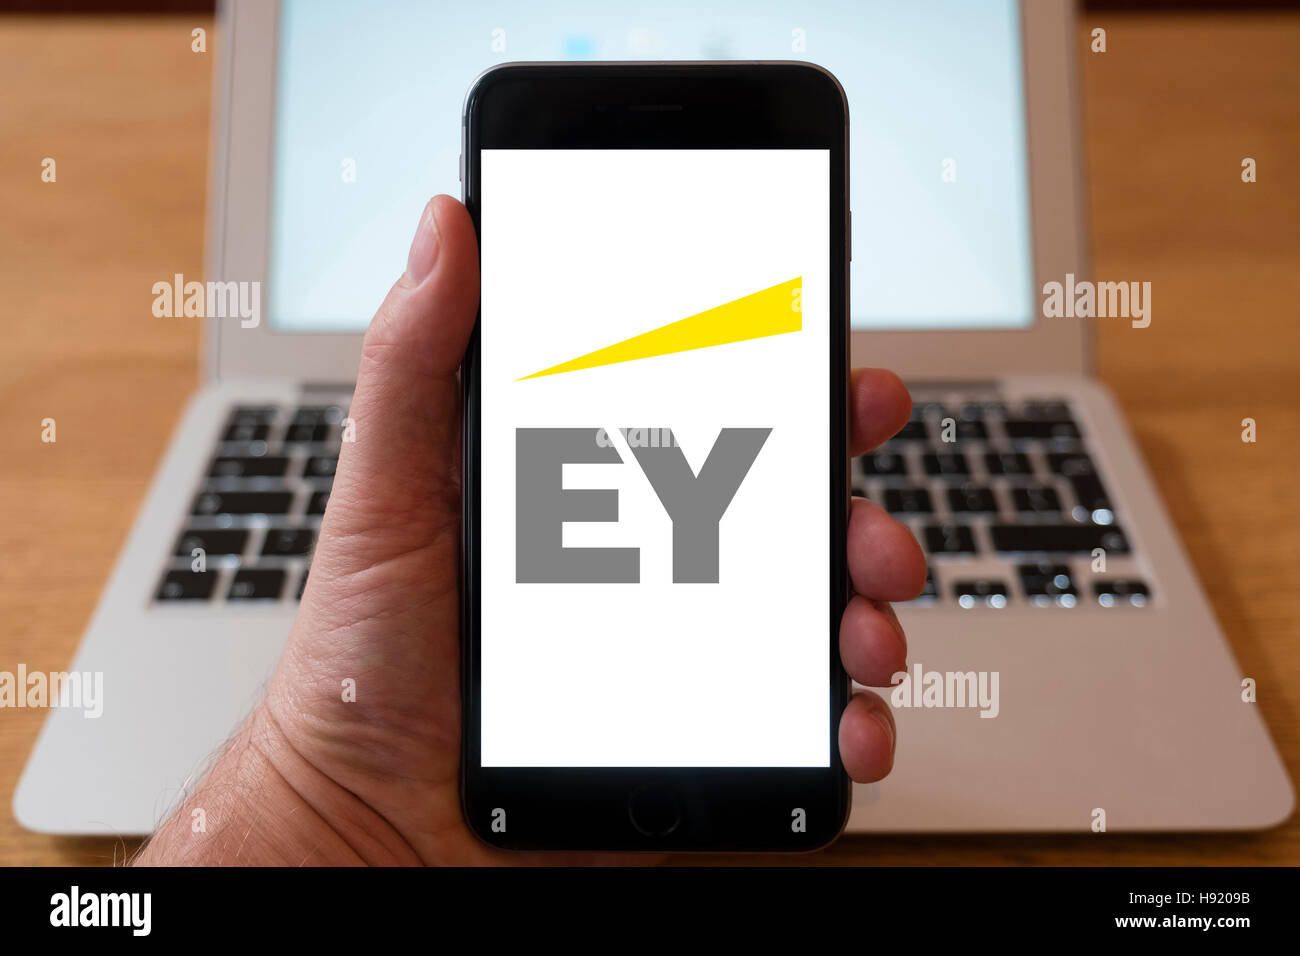 Using iPhone smart phone to display website logo of EY (Ernst & Young) a multinational professional services - Stock Image